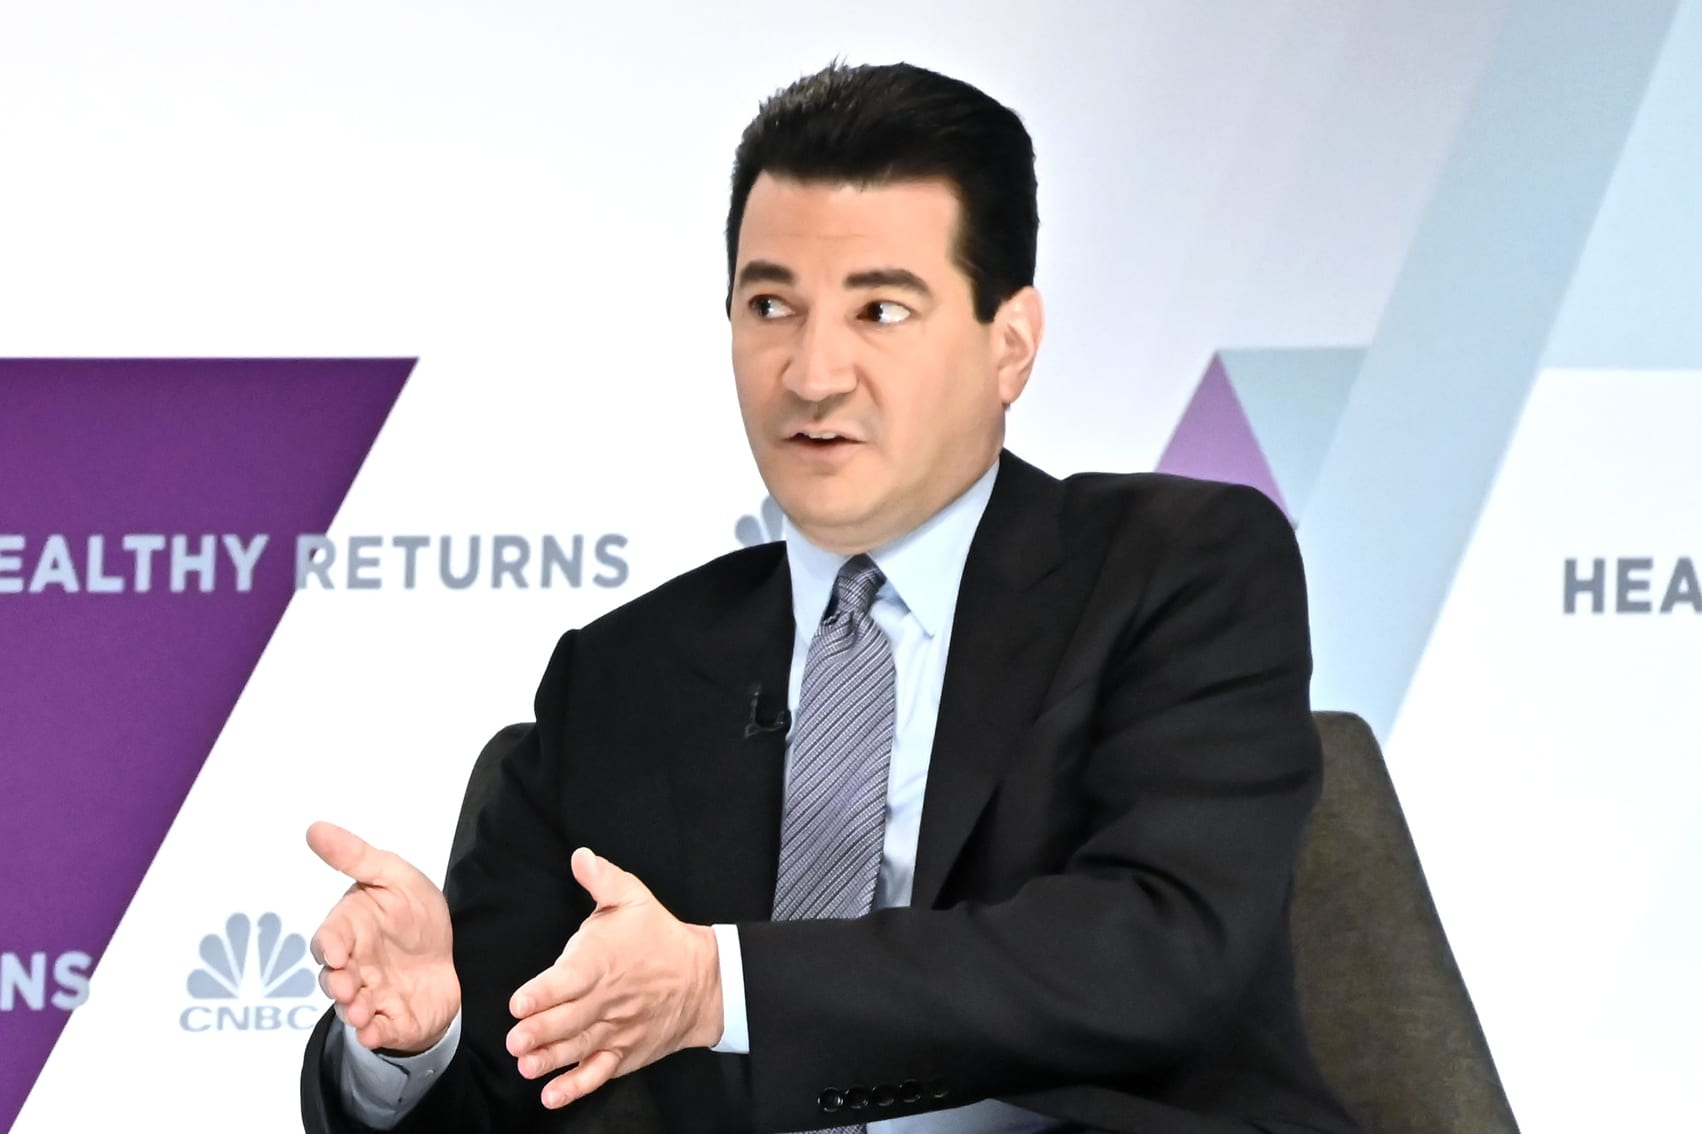 Some portion of the U.S. population will get booster shots, Dr. Scott Gottlieb says